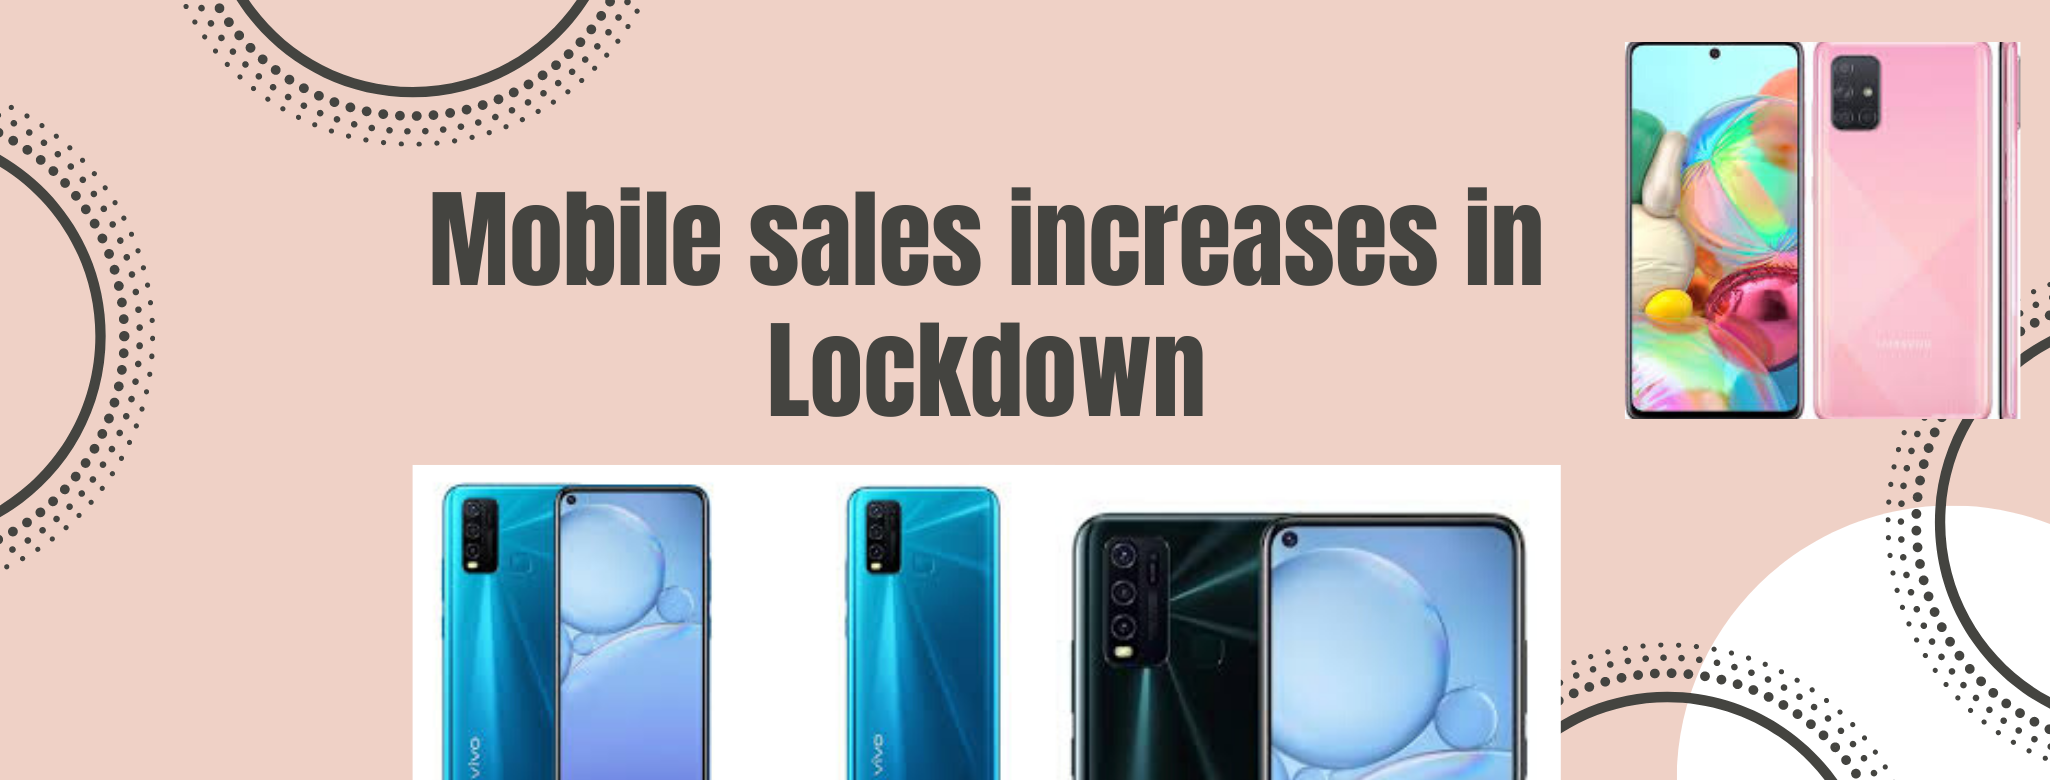 Mobile sales increases in Lockdown